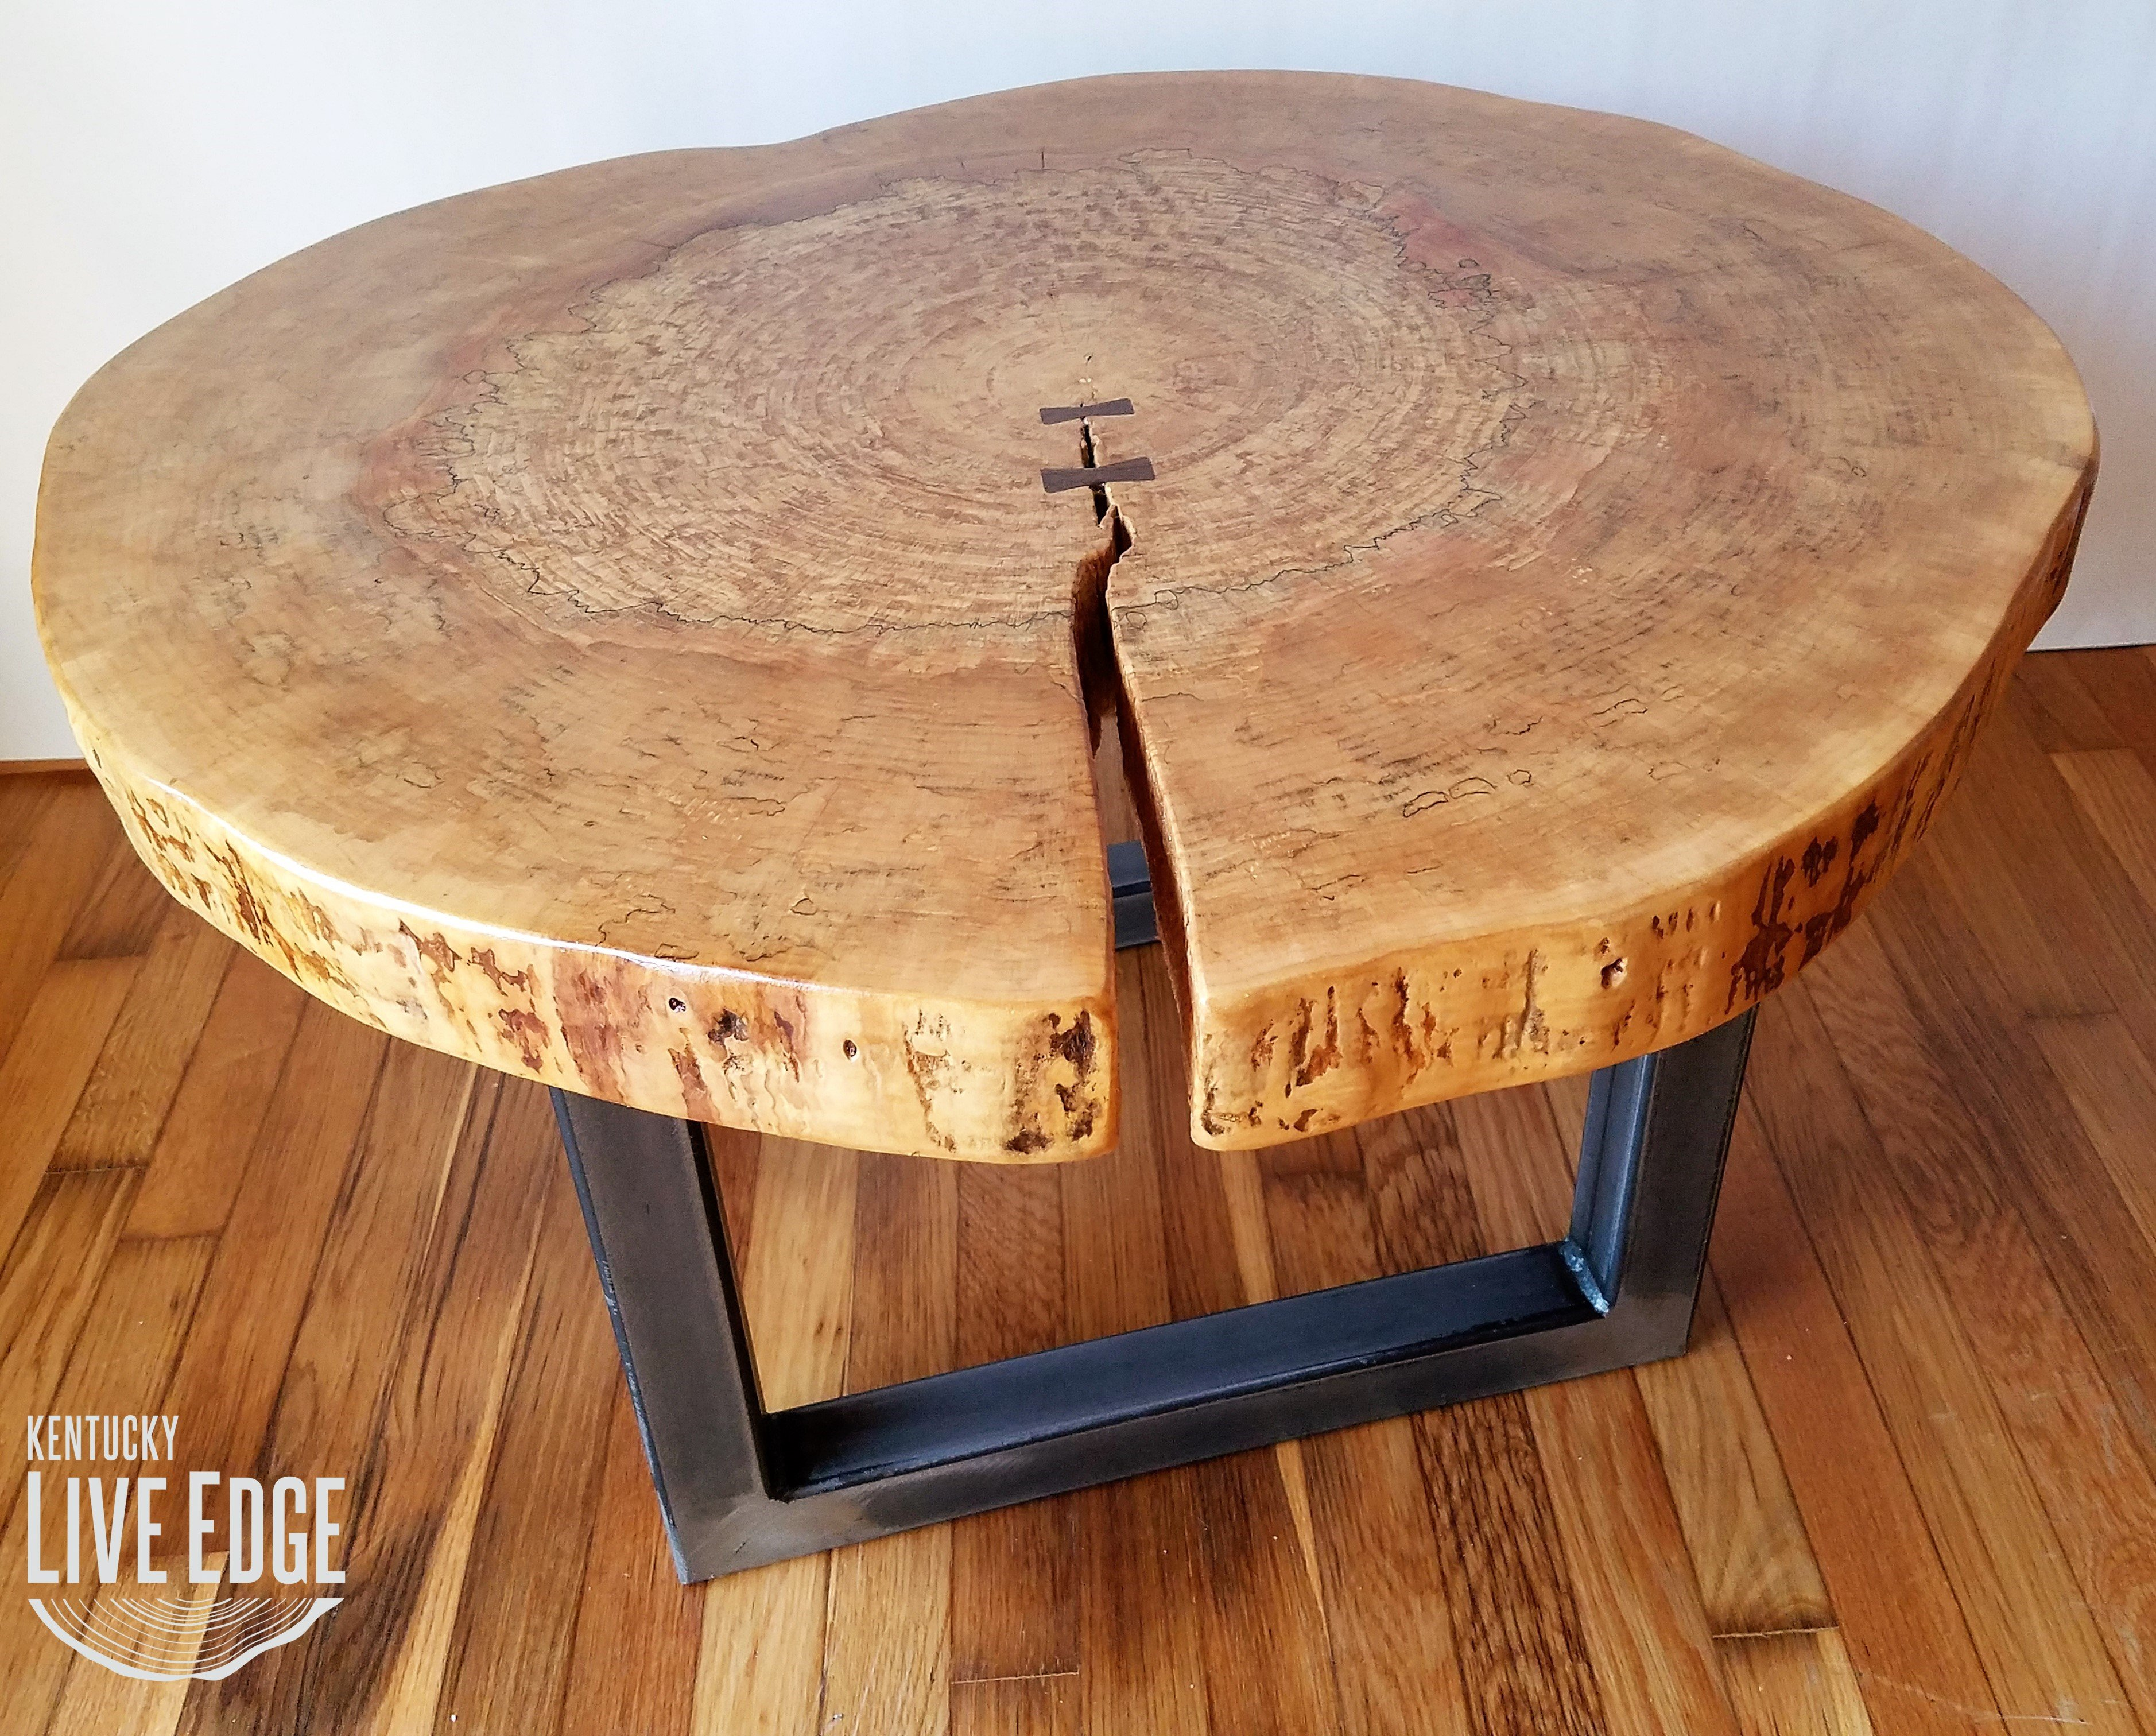 round coffee table live edge industrial tree slice log rustic furniture end tables living room side natural wood maple slab inexpensive nesting kmart outdoor patio bar ashley